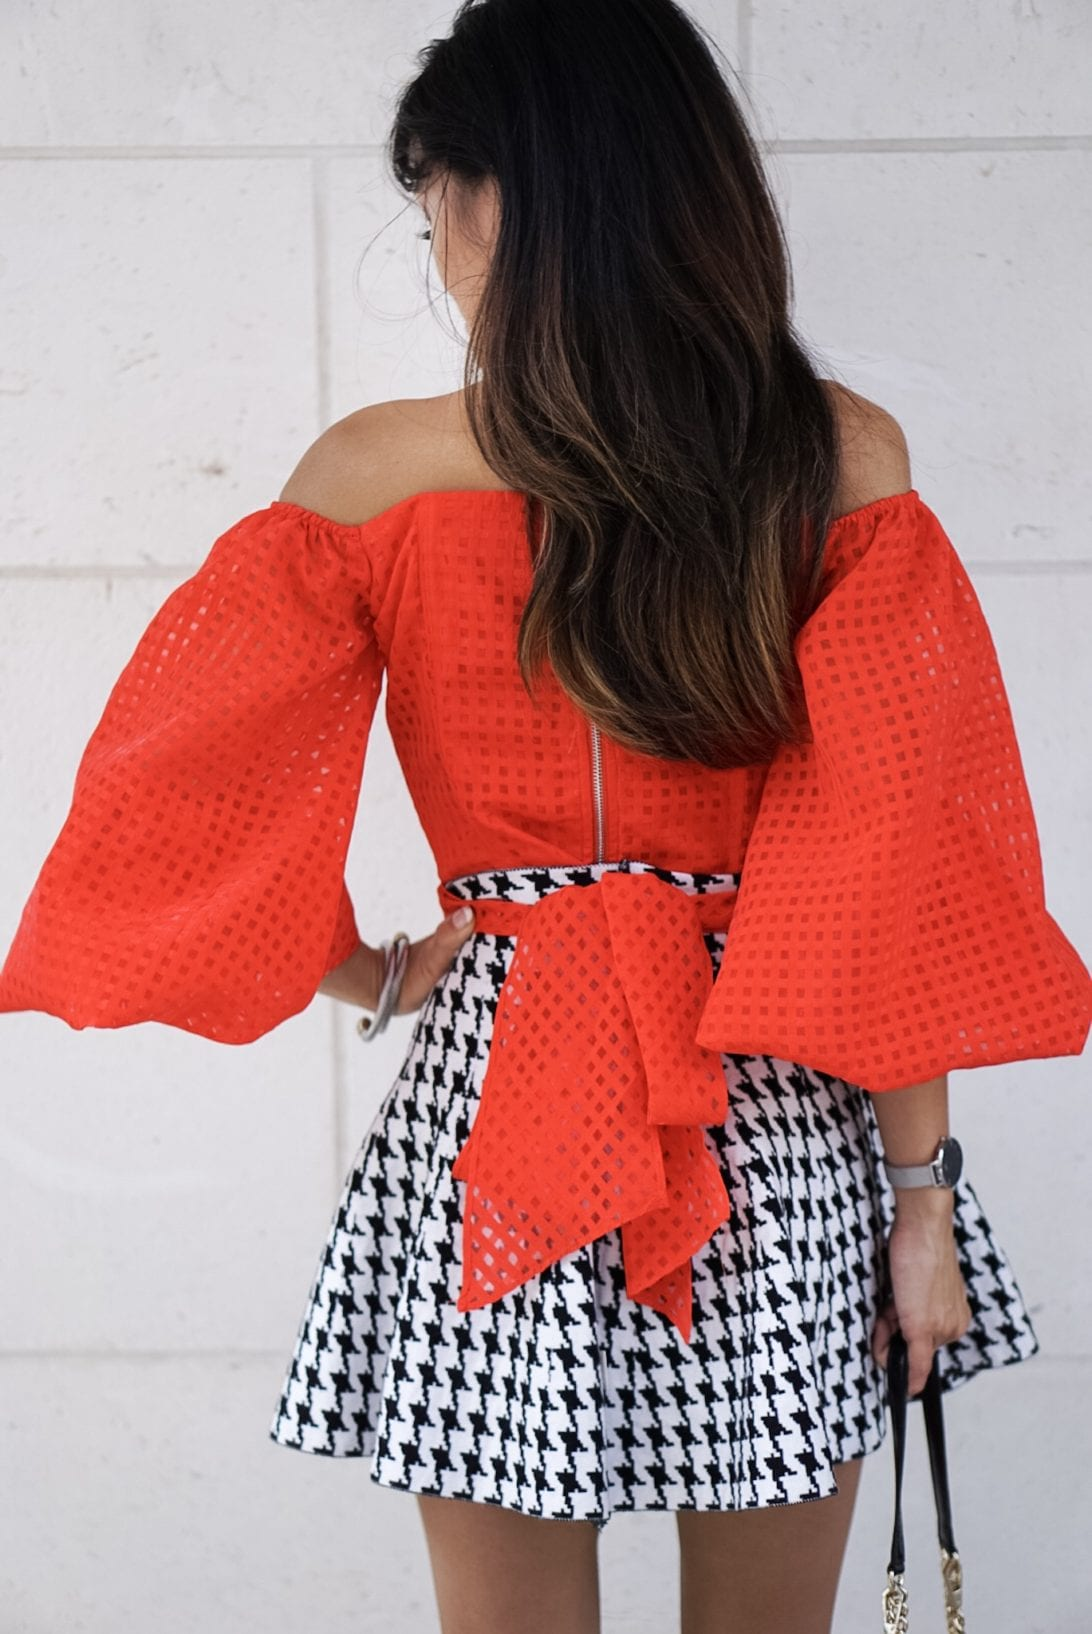 RED OFF THE SHOULDER BASKET WEAVE TOP WITH BOW TIE WAIST, houndstooth skirt, puff sleeves, love cross body bag, flap bag,